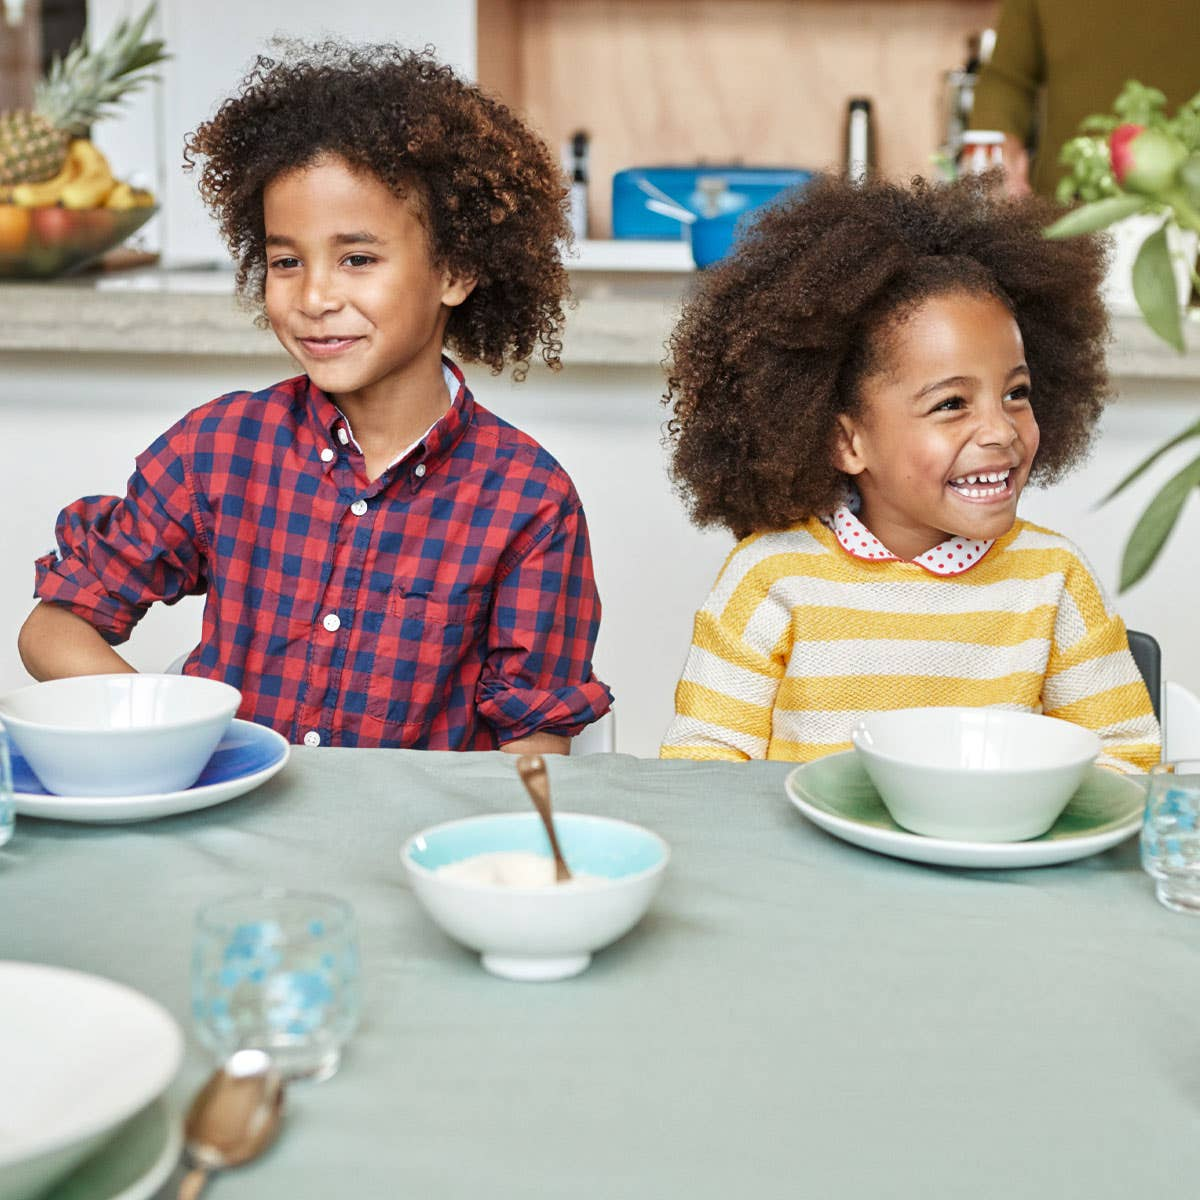 Two kids sitting at table